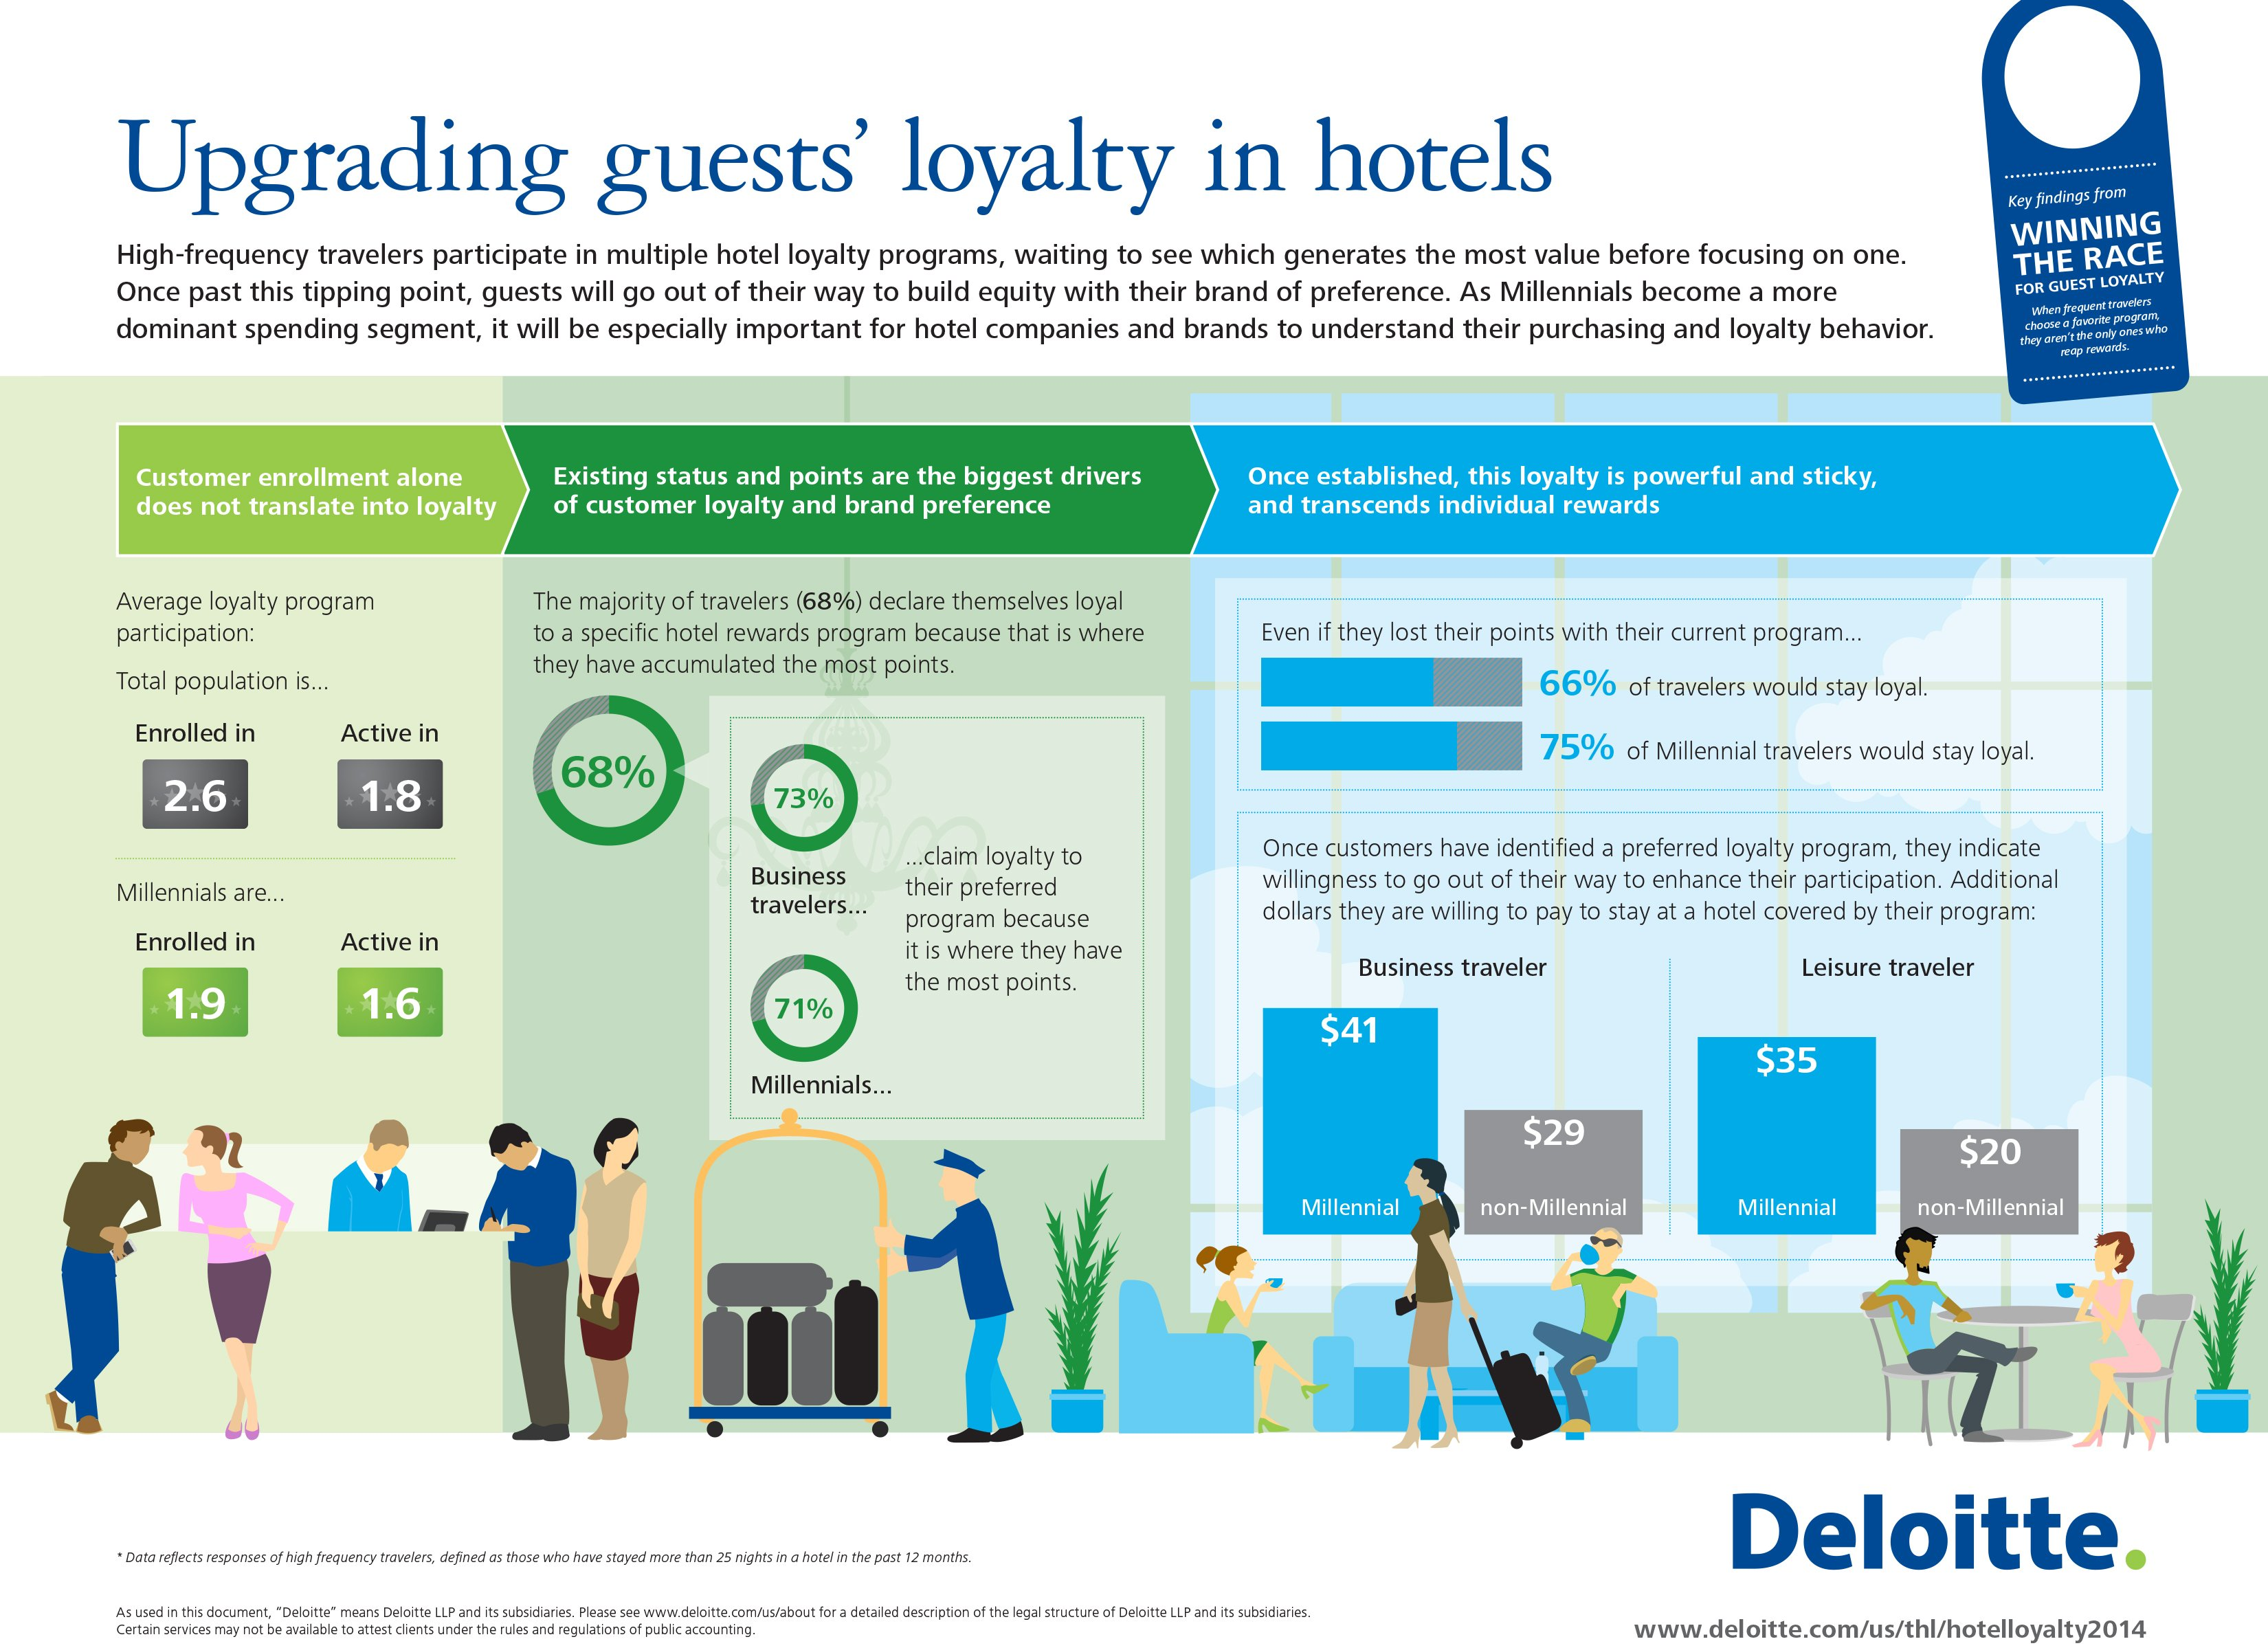 Deloitte Survey: For Millennial Travelers, It's the Experience That Counts